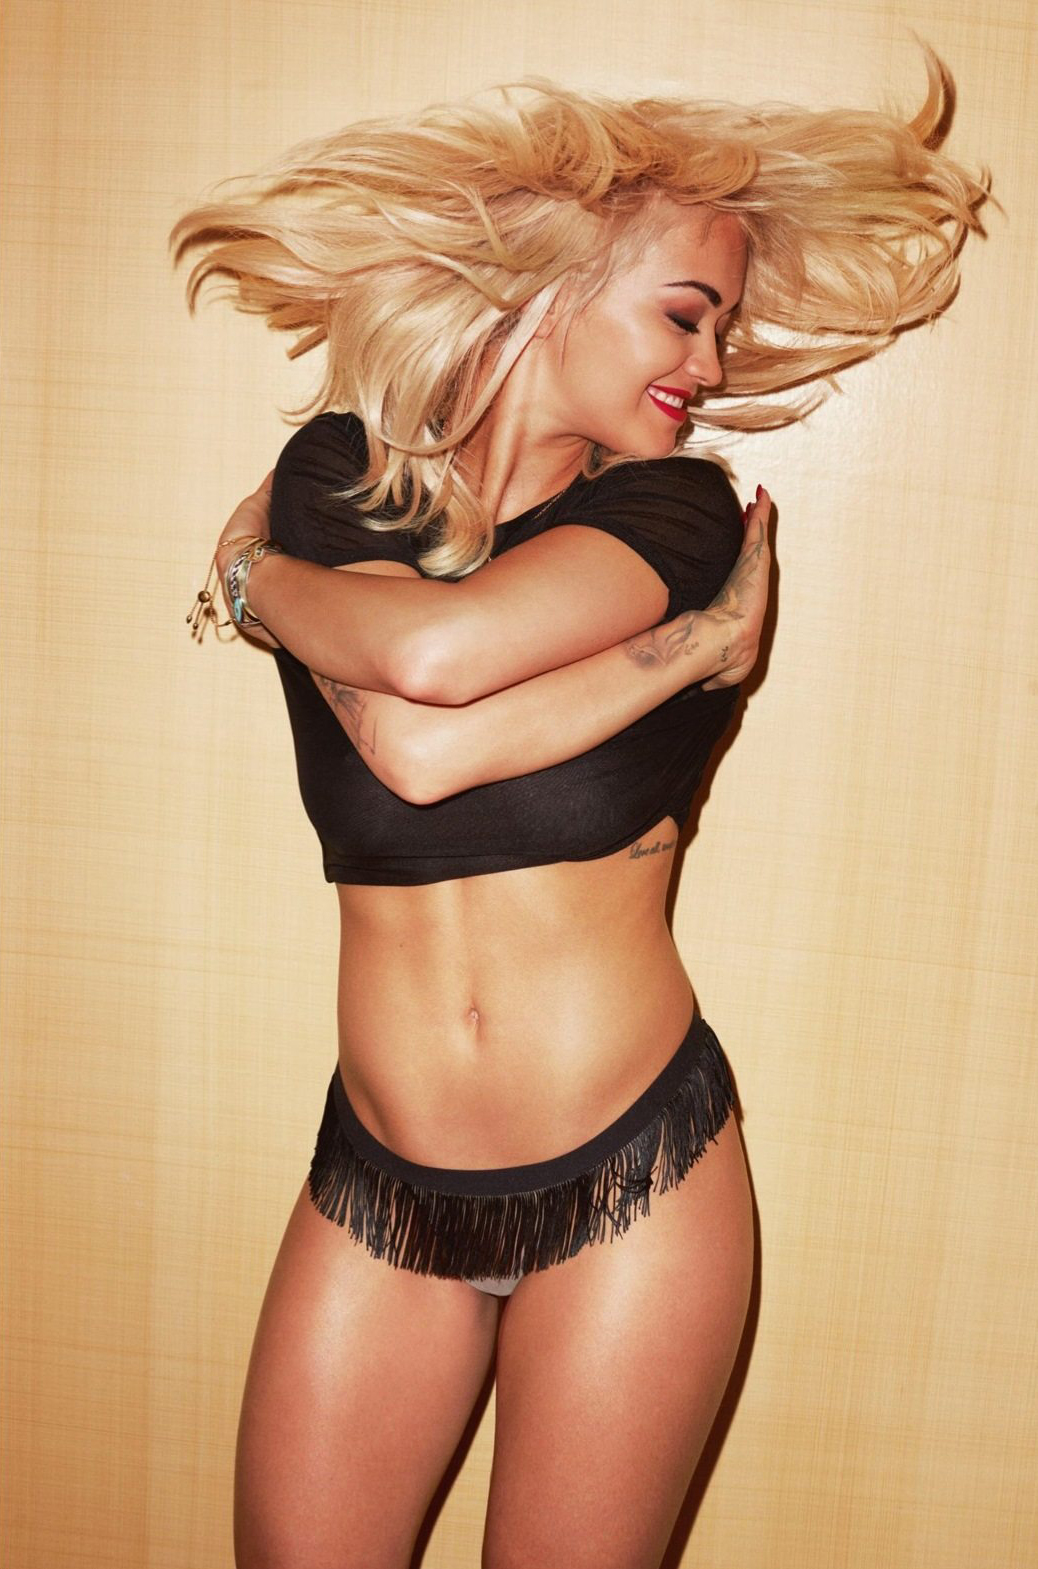 rita-ora-terry-richardson-photoshoot-for-lui-magazine-february-2016-folkr-08-bis